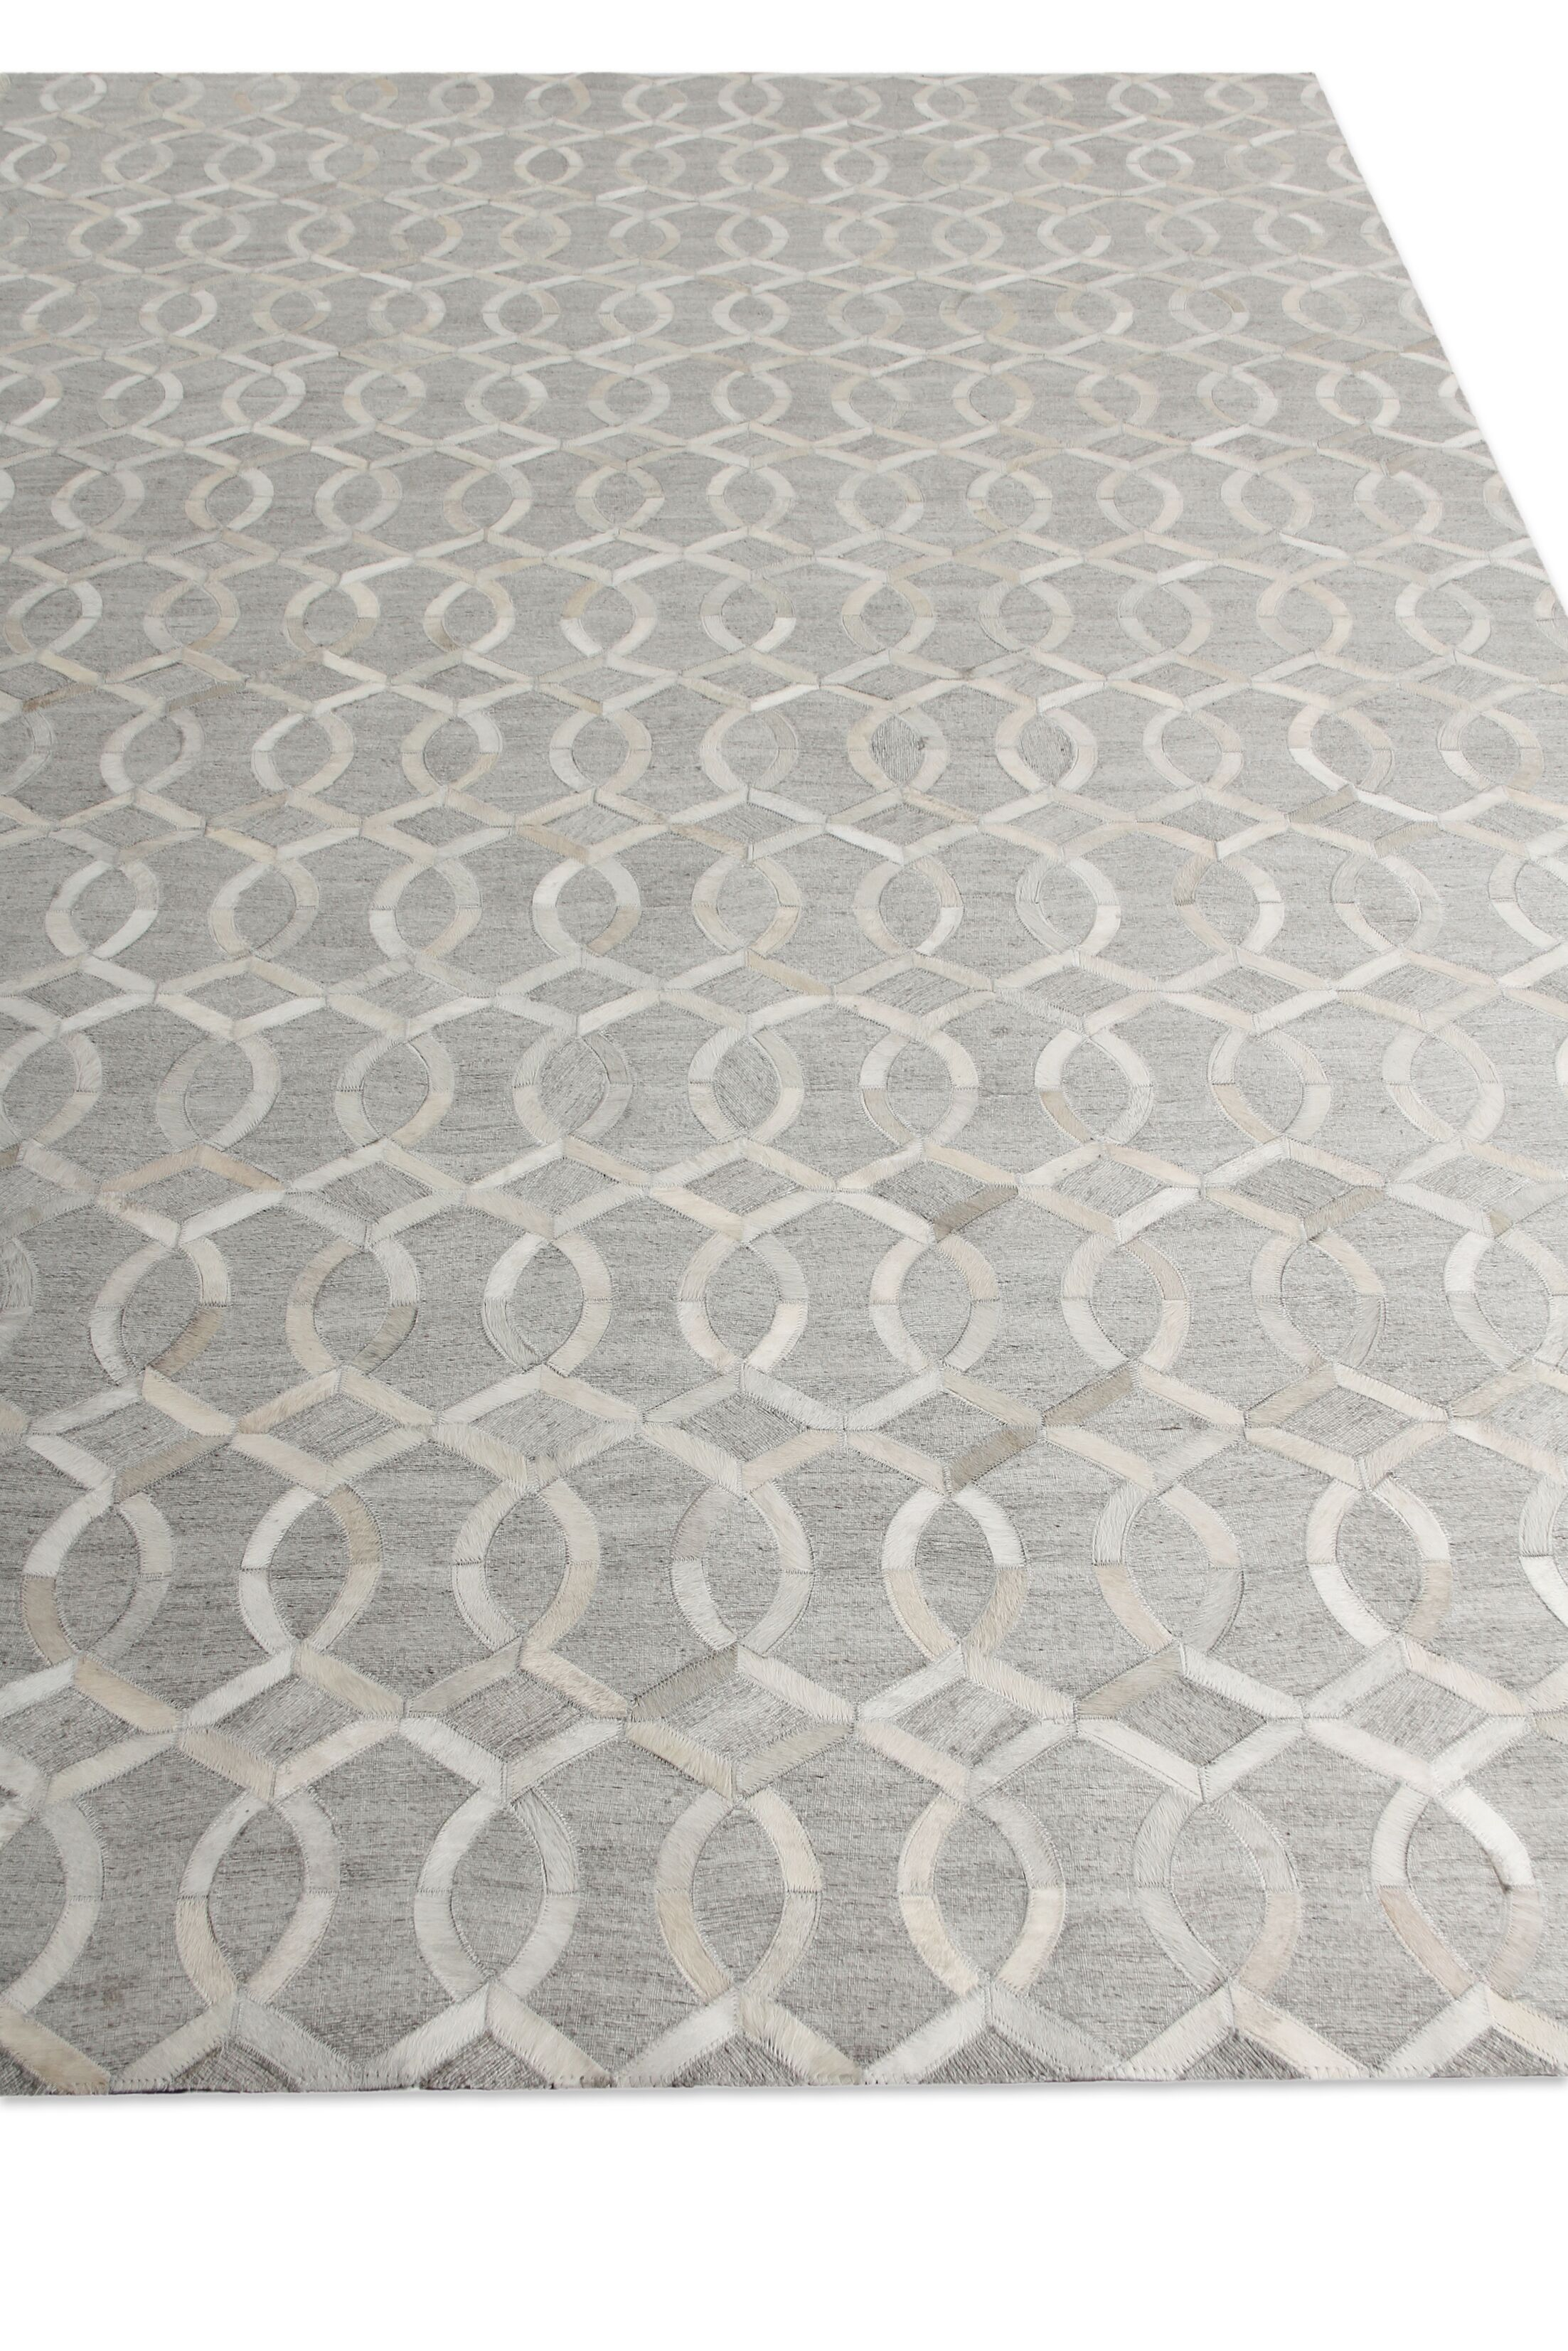 Berlin Silver/Ivory Area Rug Rug Size: Rectangle 9'6